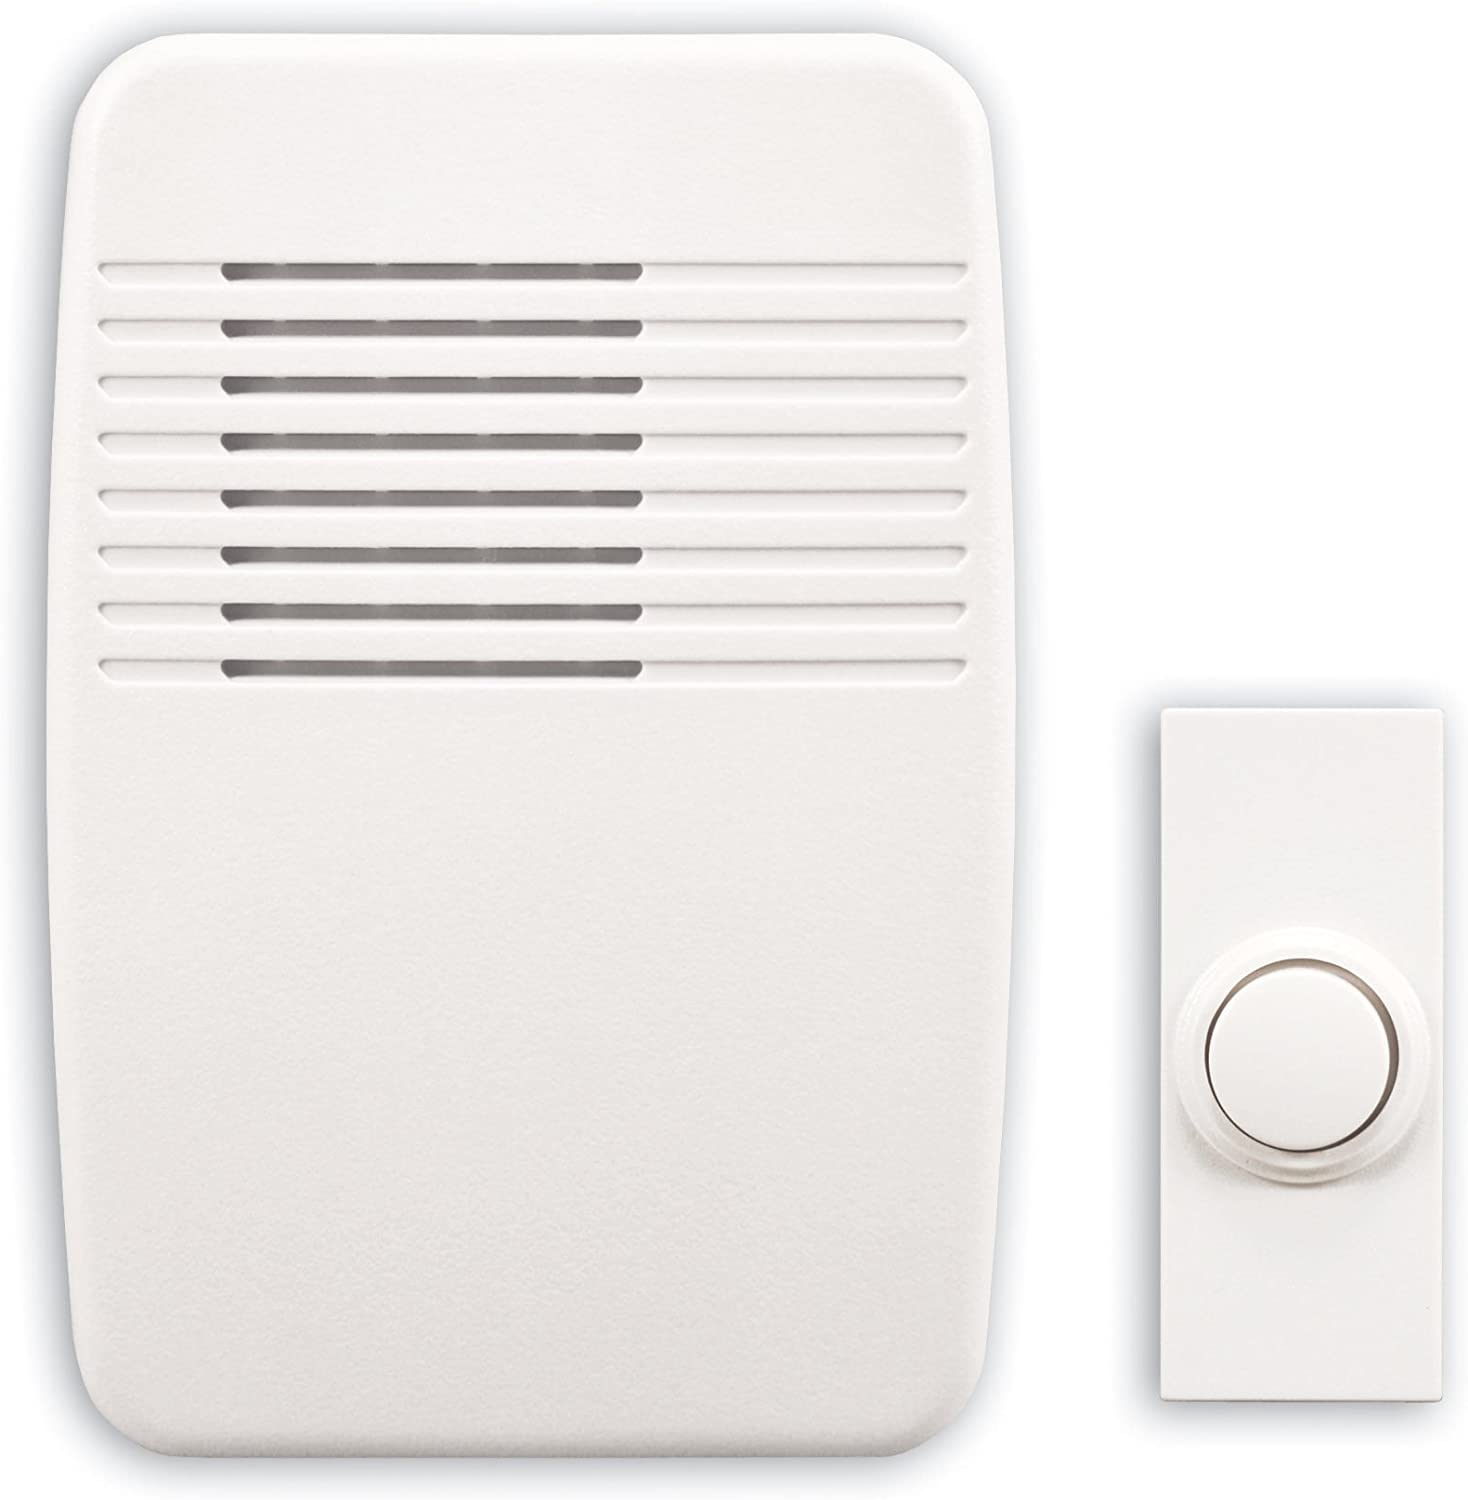 Heath/Zenith SL-7366-02 Wireless Plug-In Door Chime Kit with Molded Plastic Cover, White